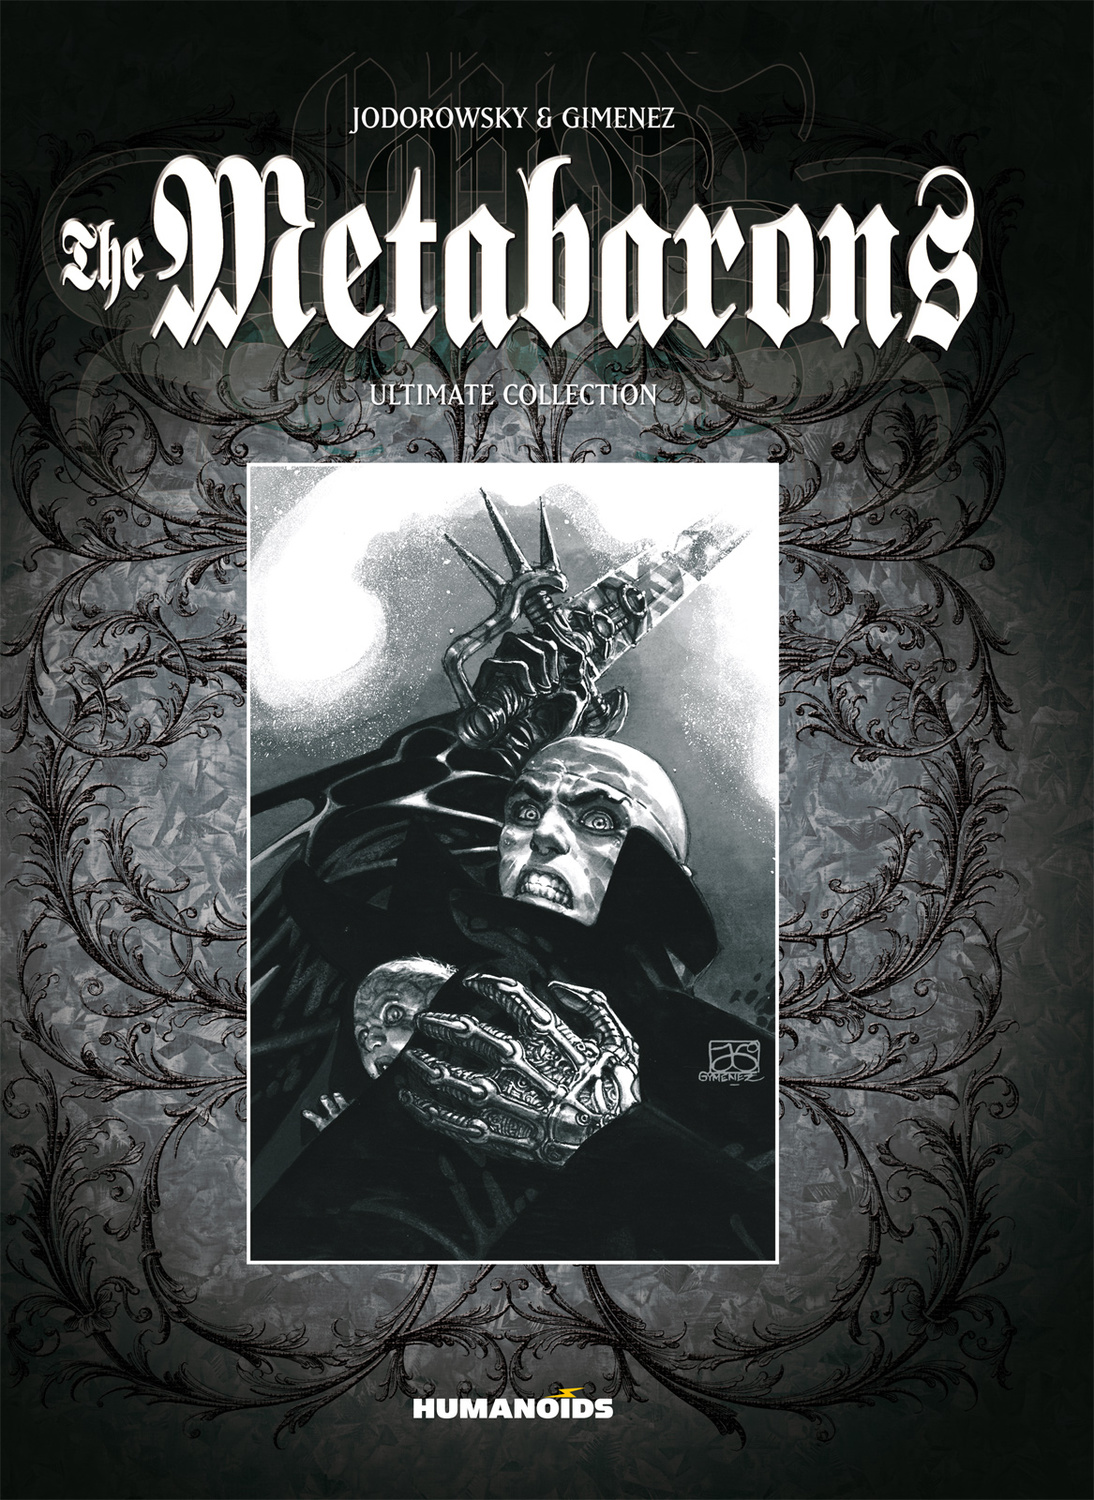 The Metabarons : Ultimate Collection - Oversized Deluxe